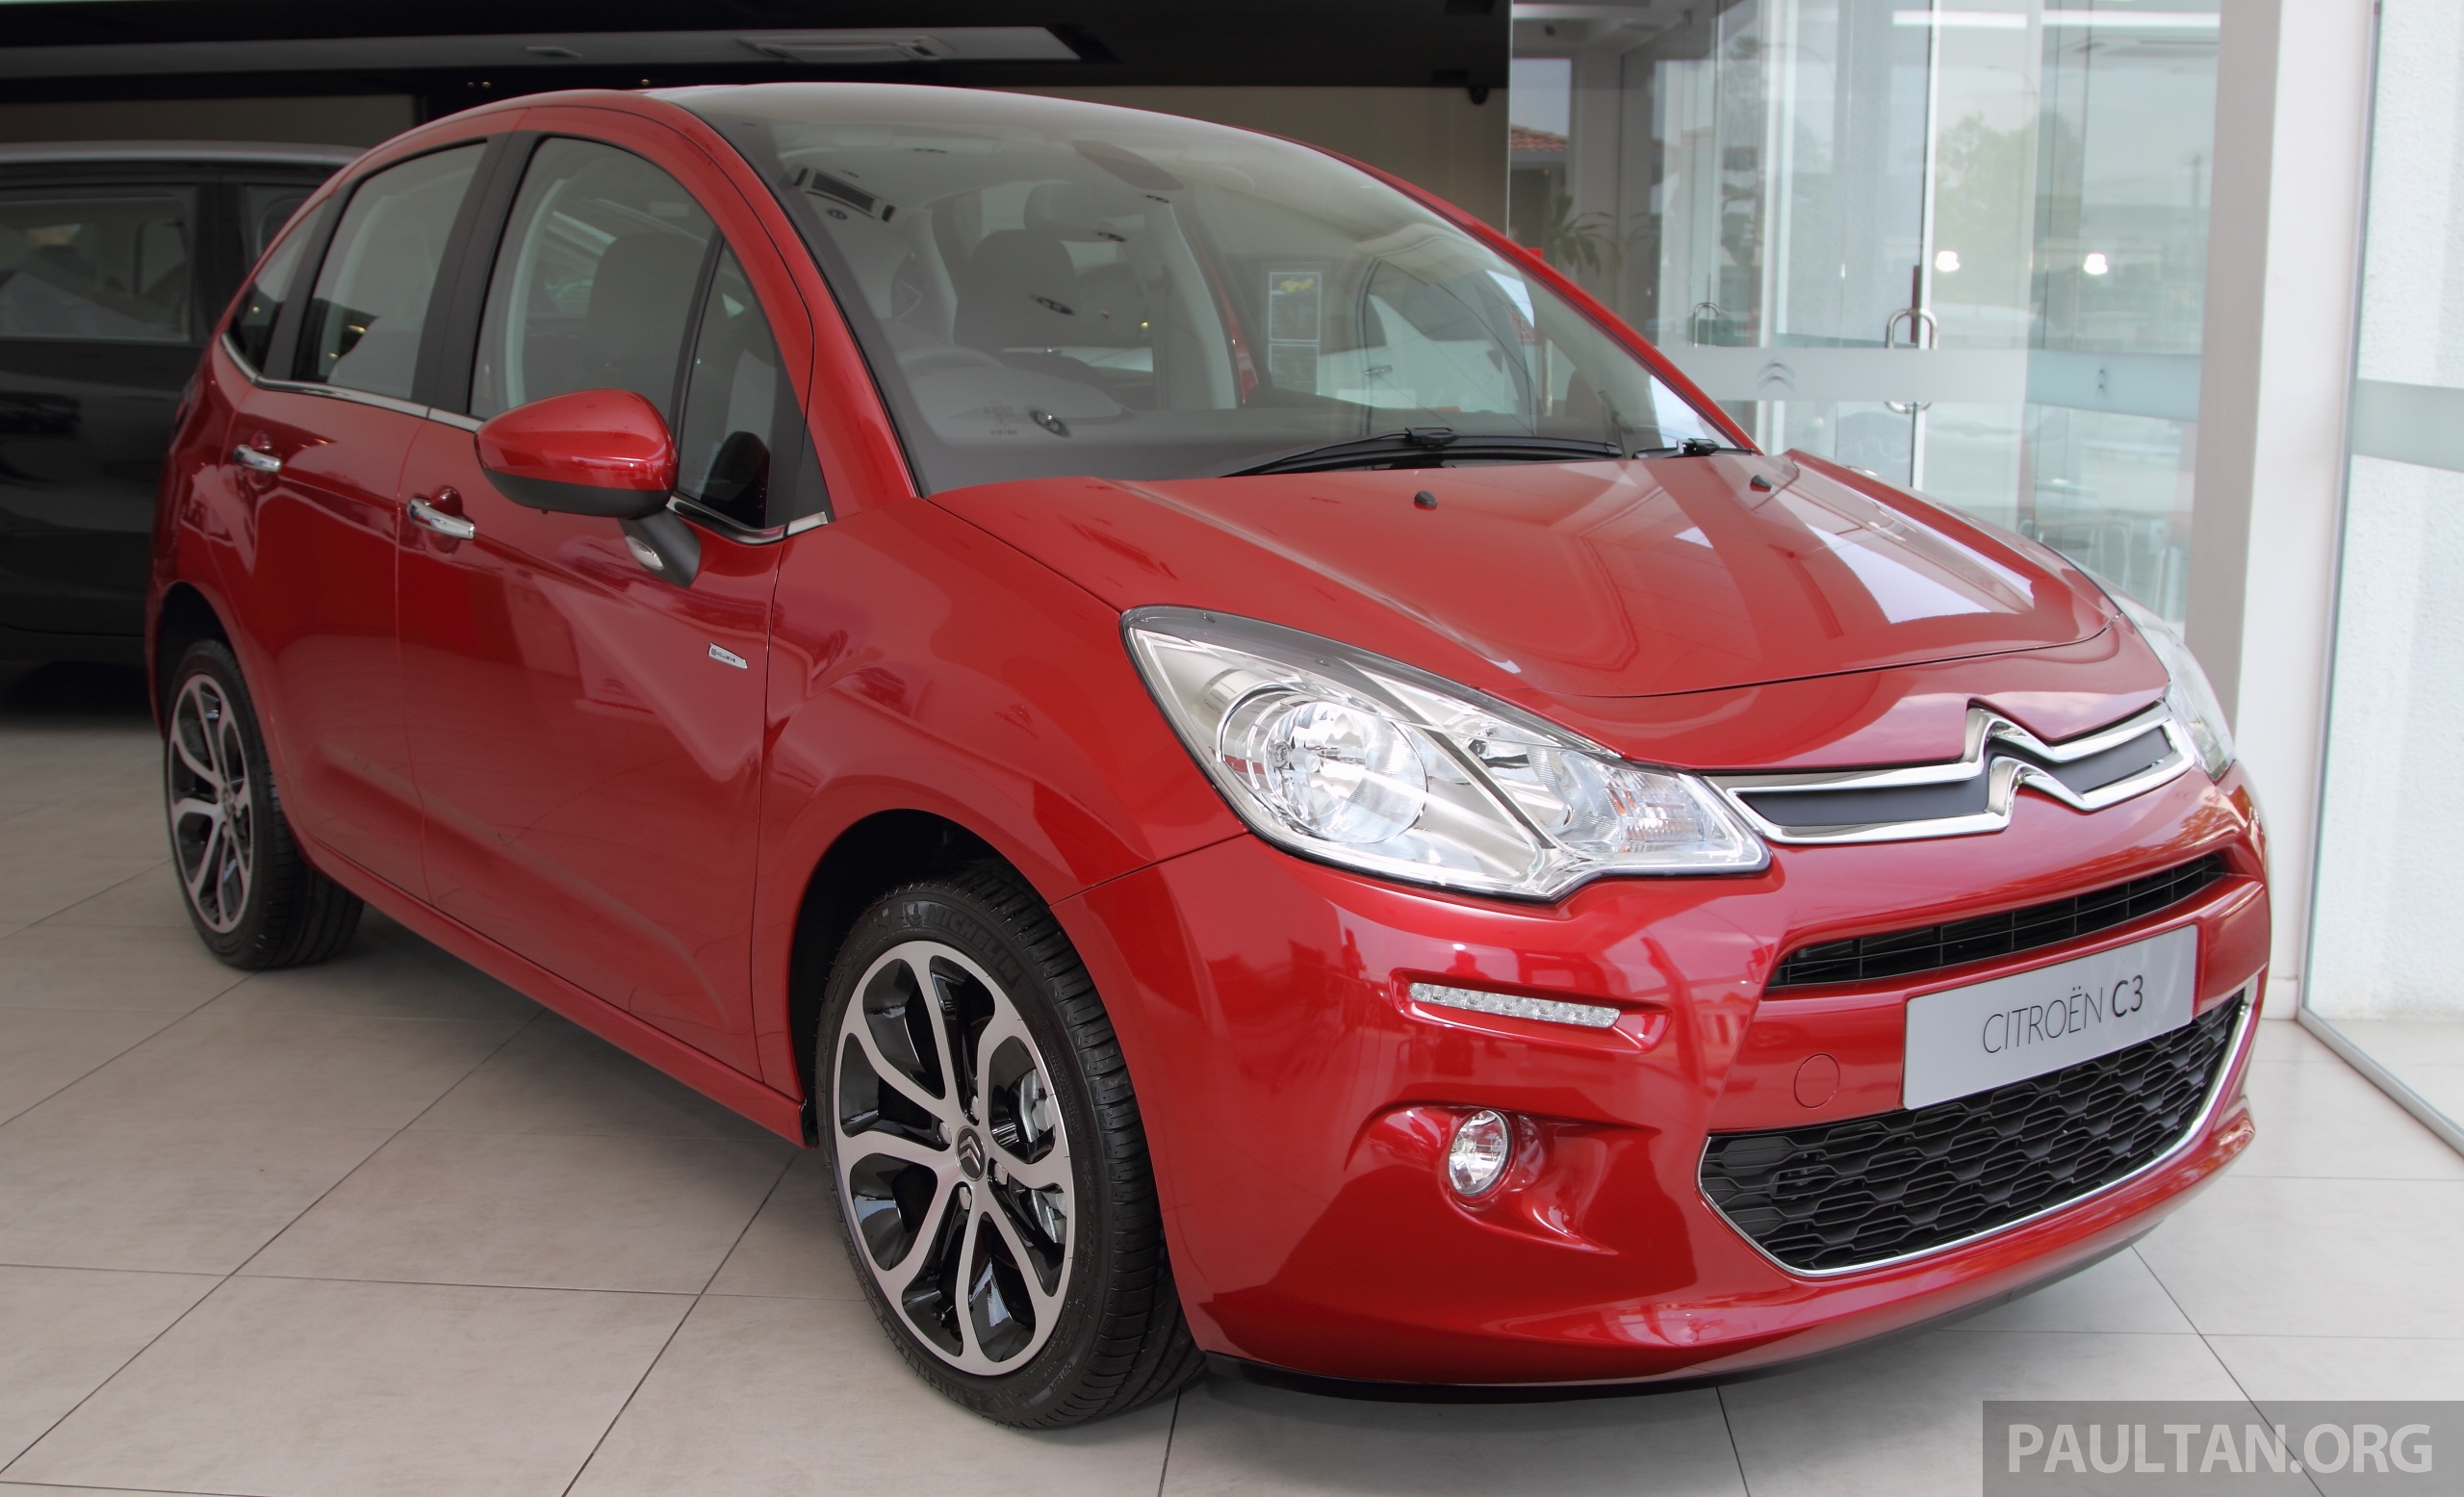 citroen c3 facelift arrives in malaysia est rm105k. Black Bedroom Furniture Sets. Home Design Ideas